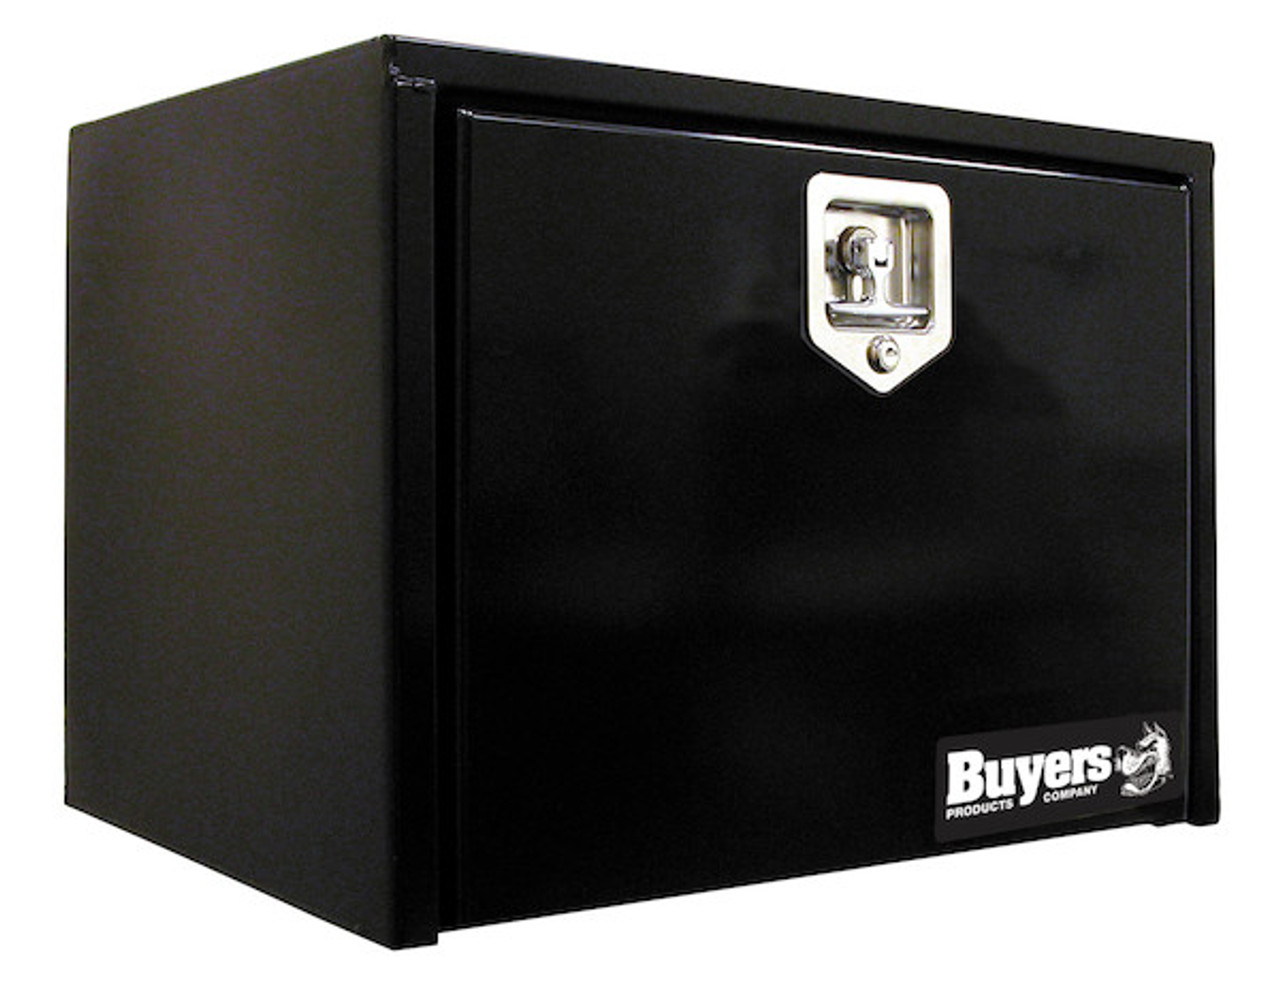 1703320 BUYERS PRODUCTS BLACK STEEL UNDERBODY TRUCK BOX WITH T-LATCH TOOLBOX